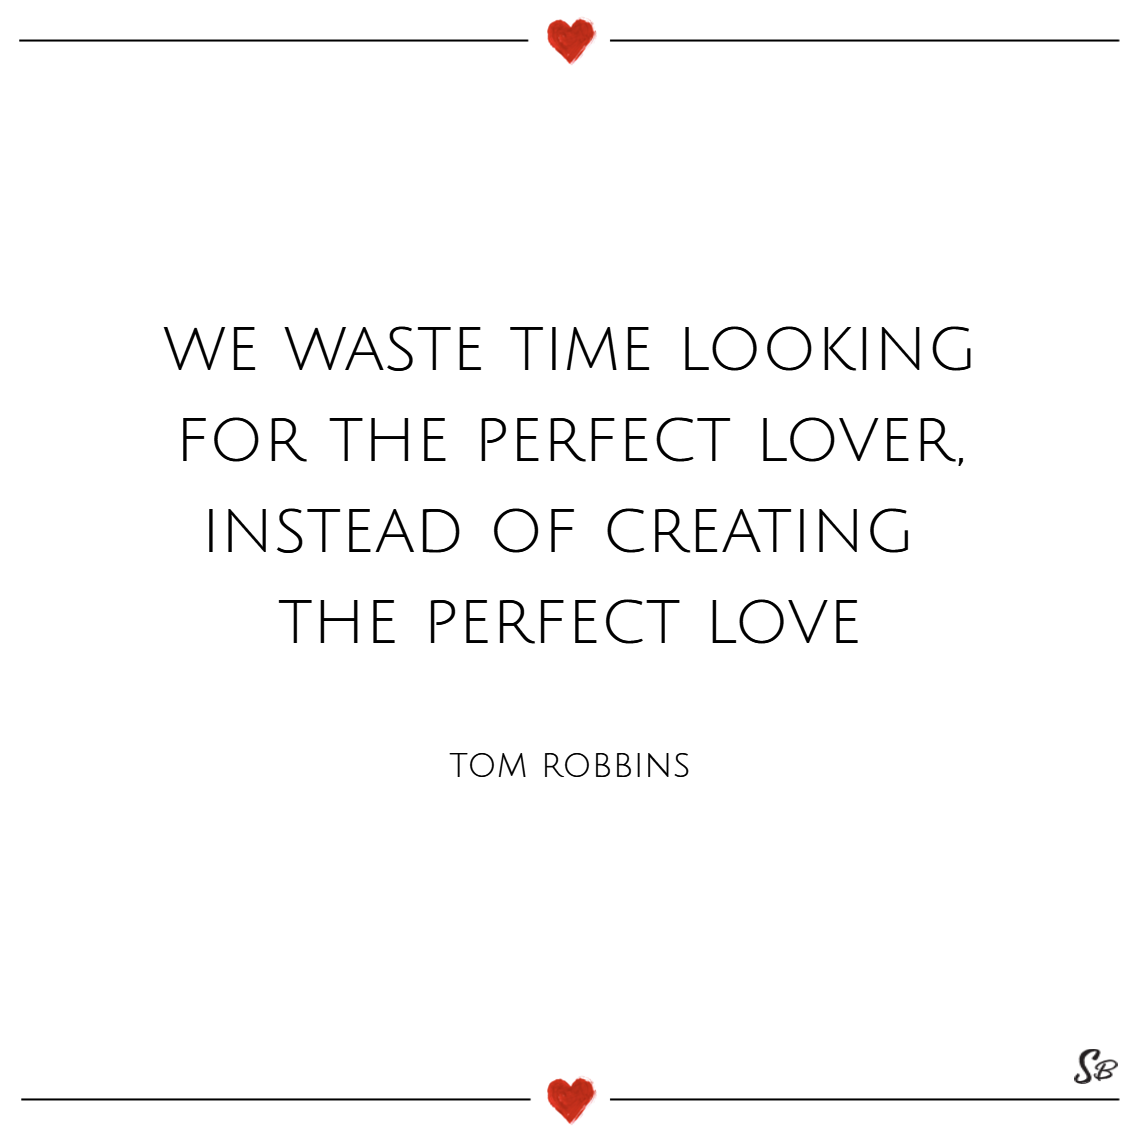 We waste time looking for the perfect lover, instead of creating the perfect love. – tom robbins